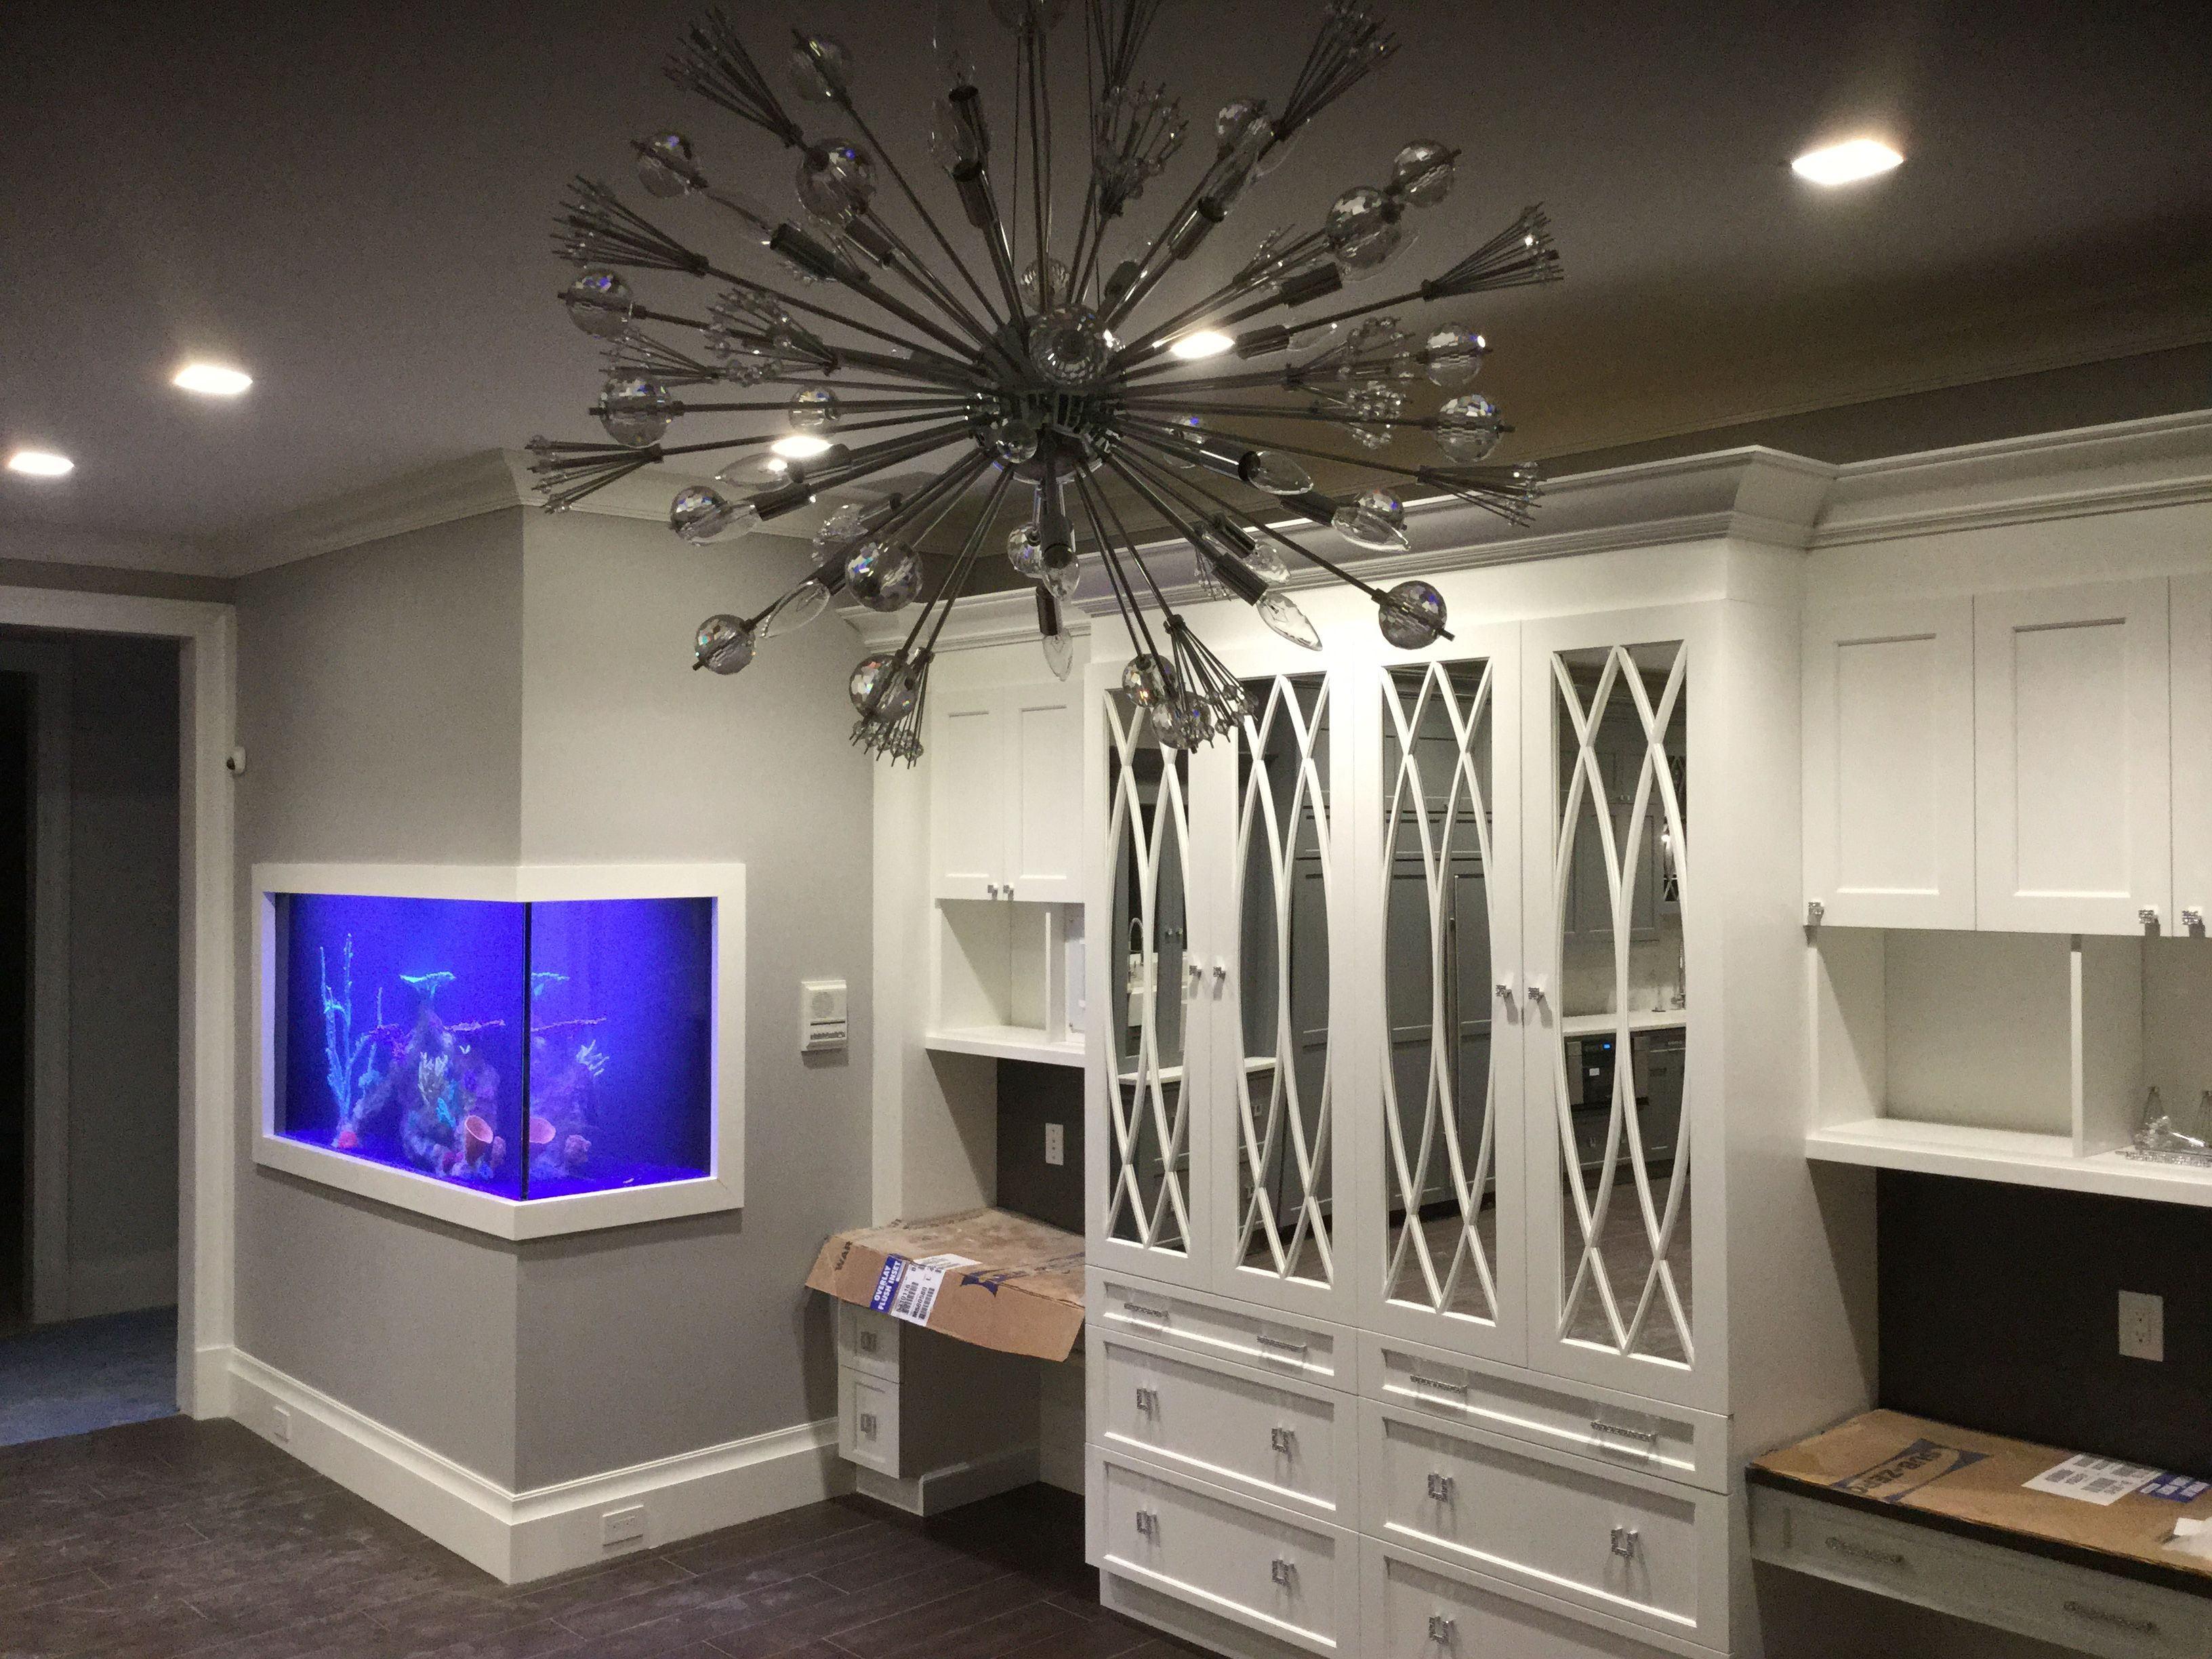 Design done right by Aqua Creations of Lakewood NJ this glass fish